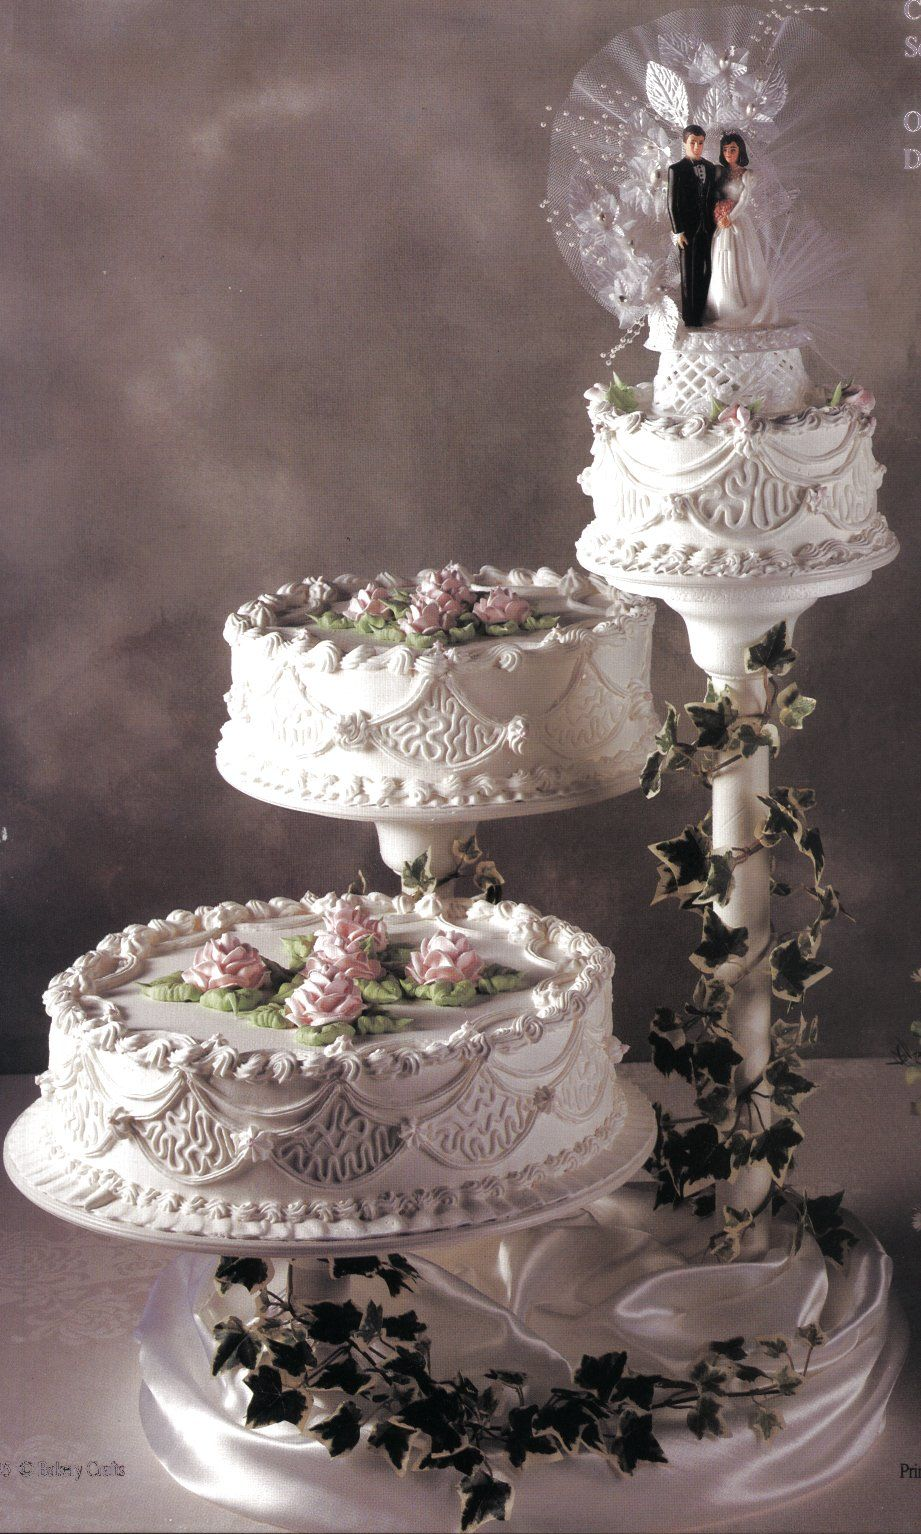 3 separate tier wedding cake stand cake step by guide to baking and decorating a wedding diy 10211